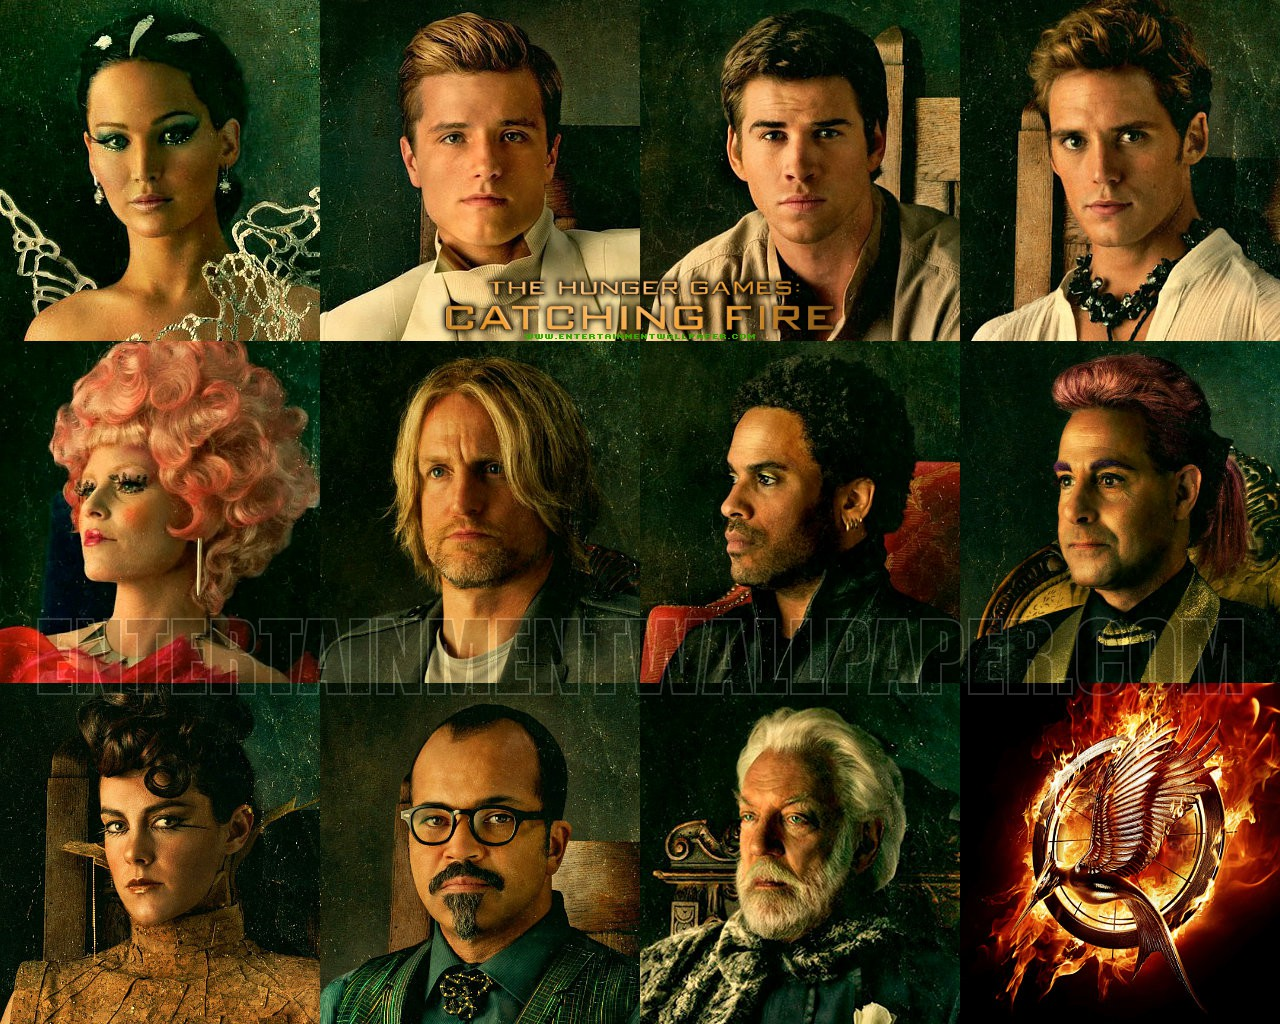 catching fire full movie free 123movies